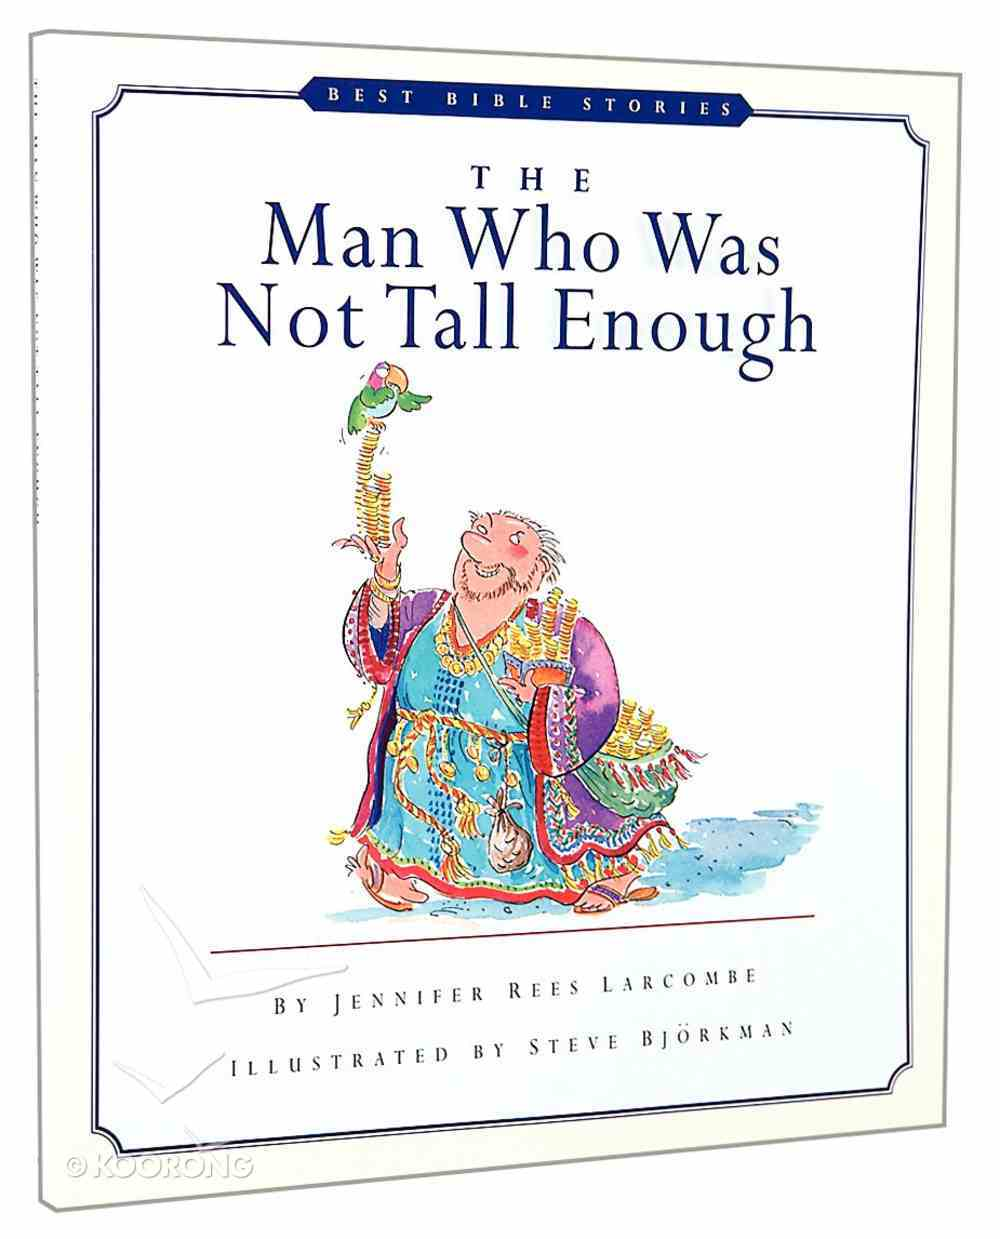 The Man Who Was Not Tall Enough (Best Bible Stories Series) Paperback